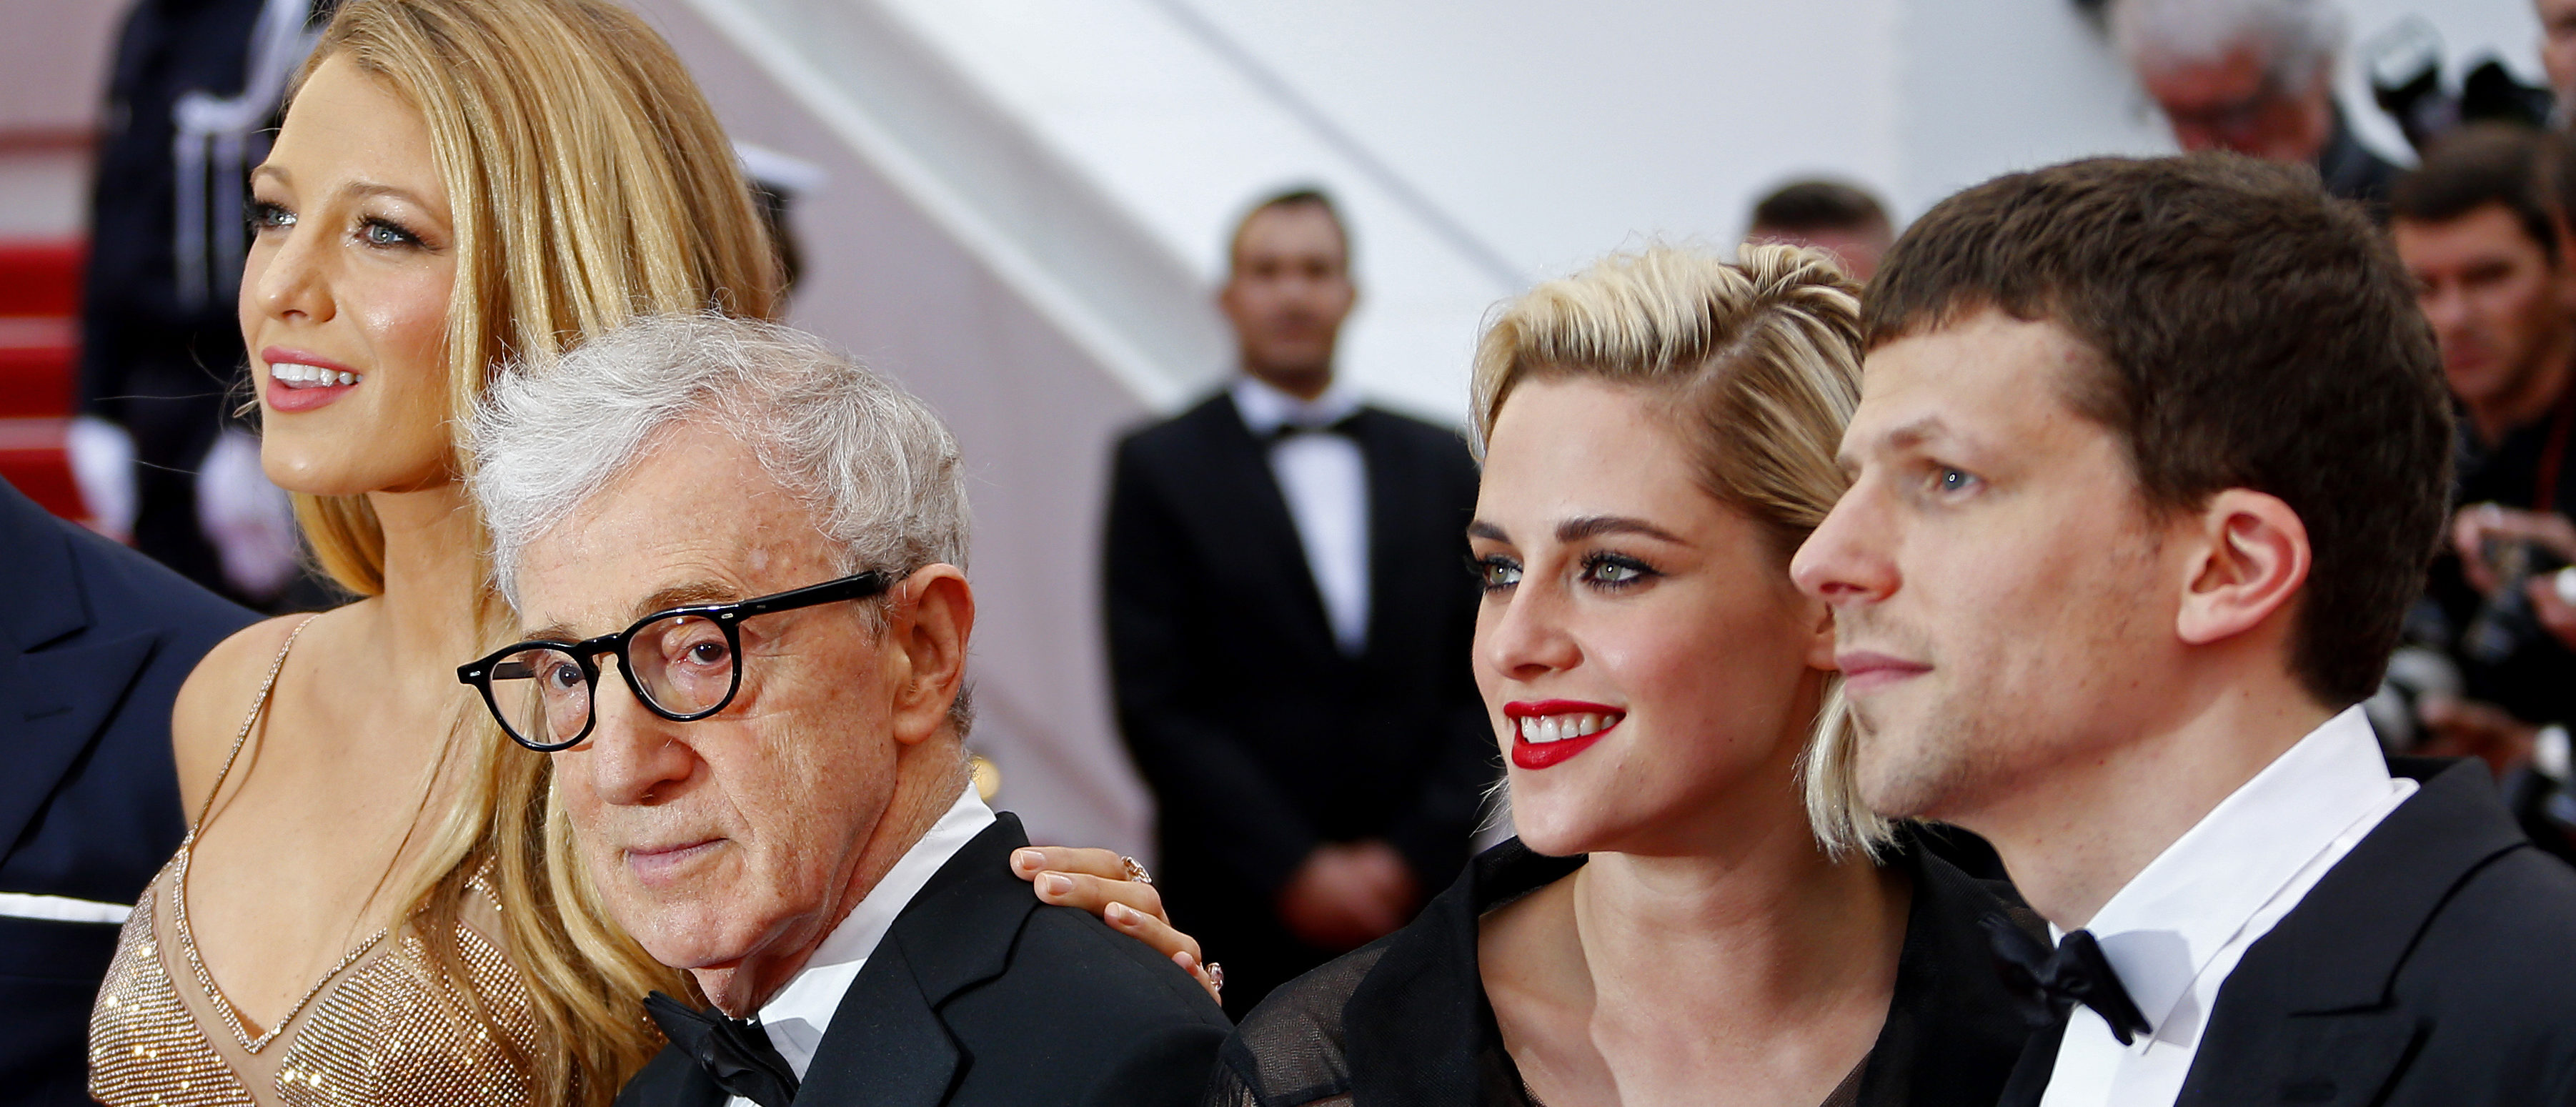 """Director Woody Allen (2ndL) and cast members (L-R) Blake Lively, Kristen Stewart and Jesse Eisenberg pose on the red carpet as they arrive for the opening ceremony and the screening of the film """"Cafe Society"""" out of competition during the 69th Cannes Film Festival in Cannes, France, May 11, 2016. REUTERS/Yves Herman - LR1EC5B1E4FPT"""